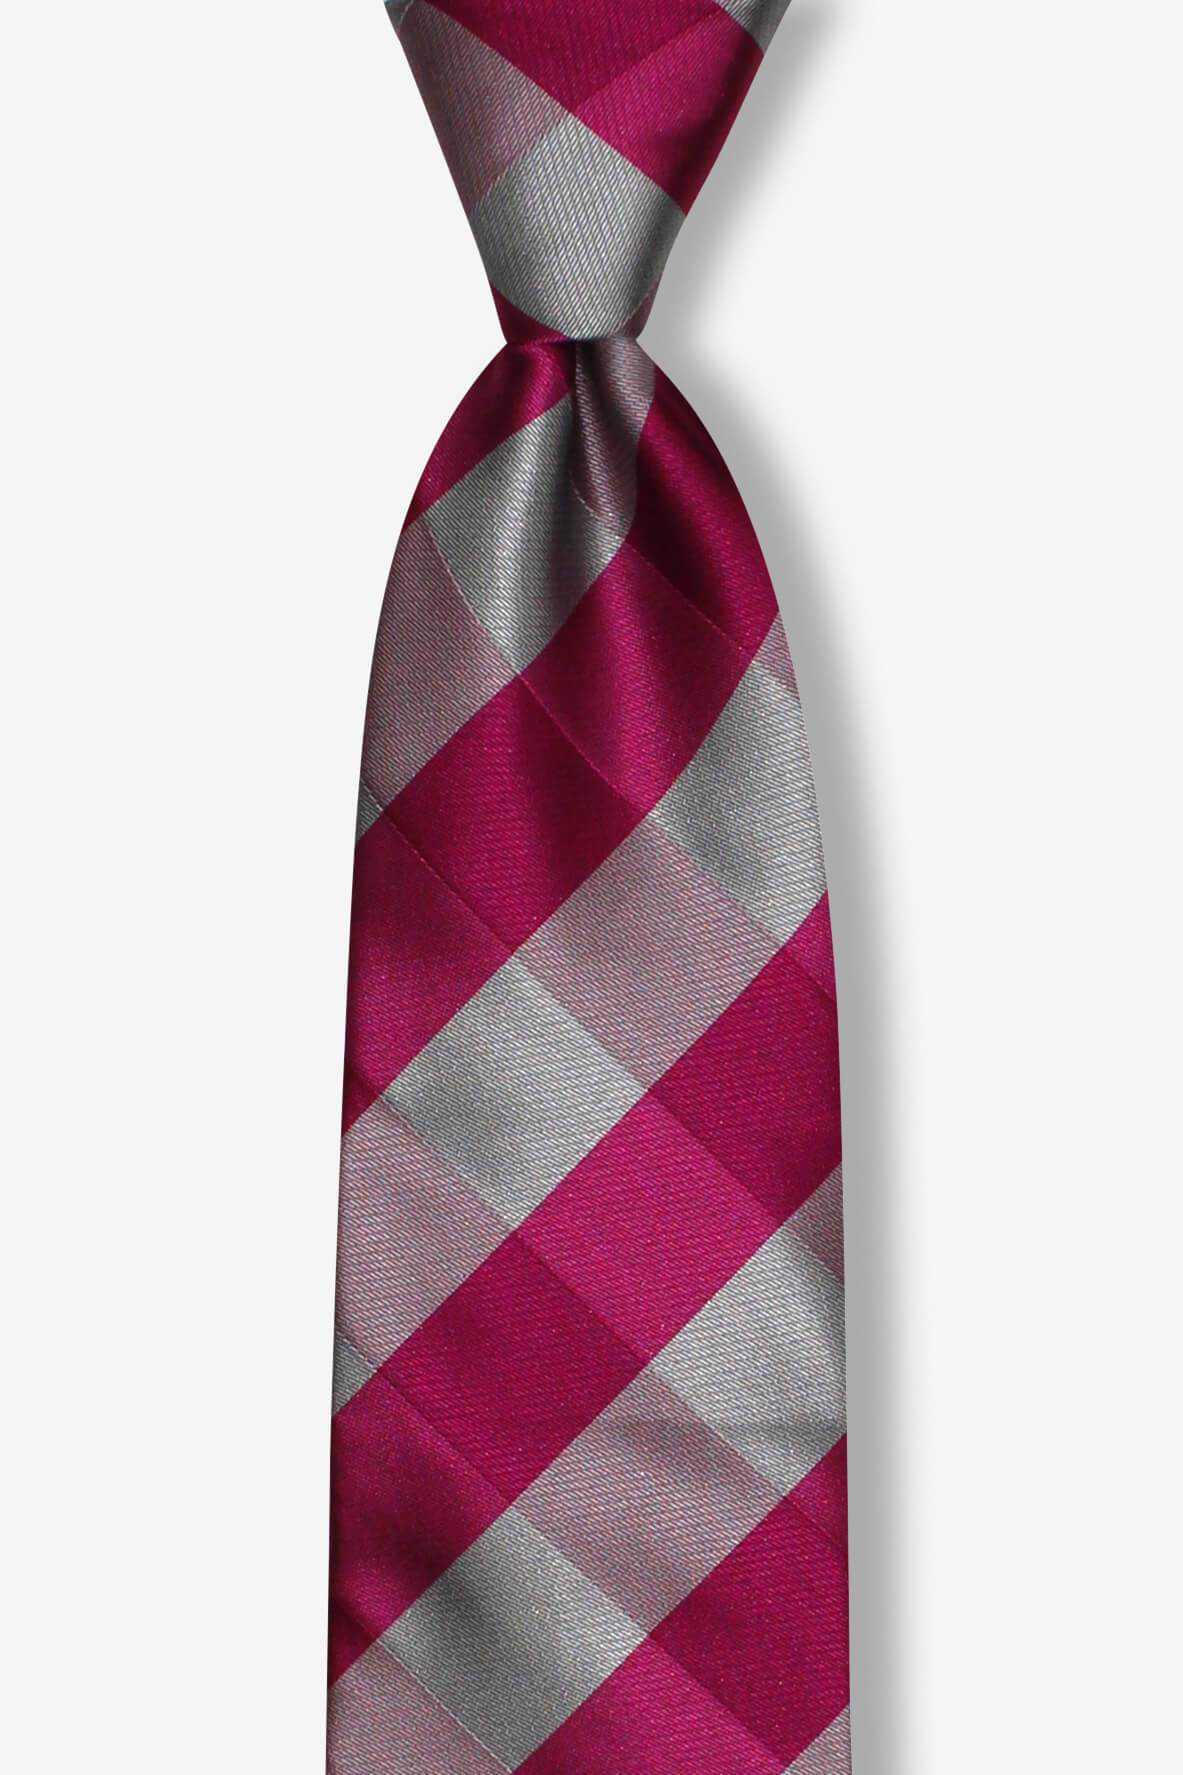 Large Plaid Pink and Gray Pre-tied Tie, Tie, GoTie